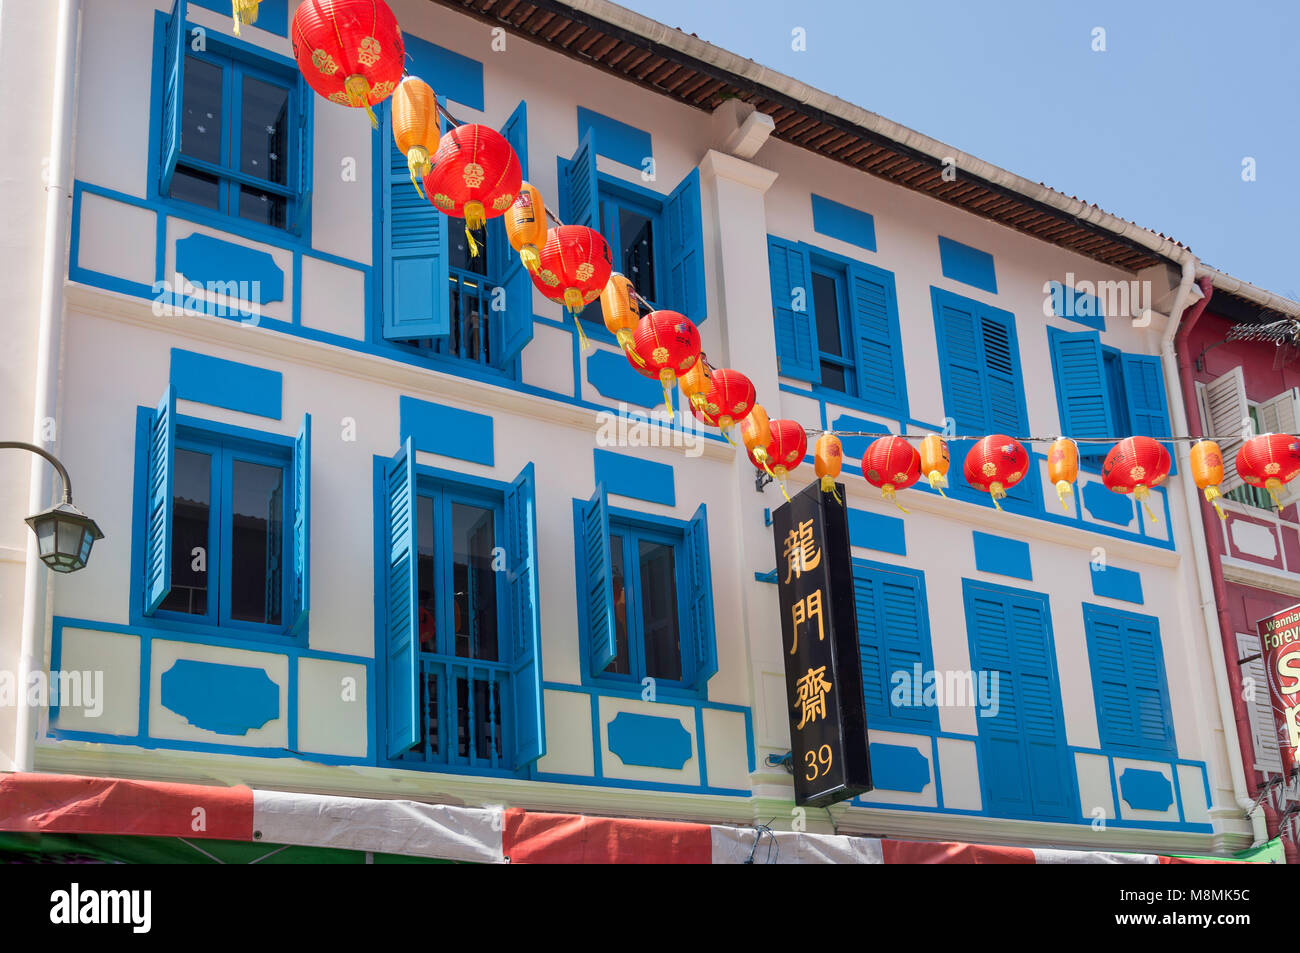 Shophouses and lanterns, Temple Street, Chinatown, Outram District, Central Area, Singapore Island (Pulau Ujong), - Stock Image